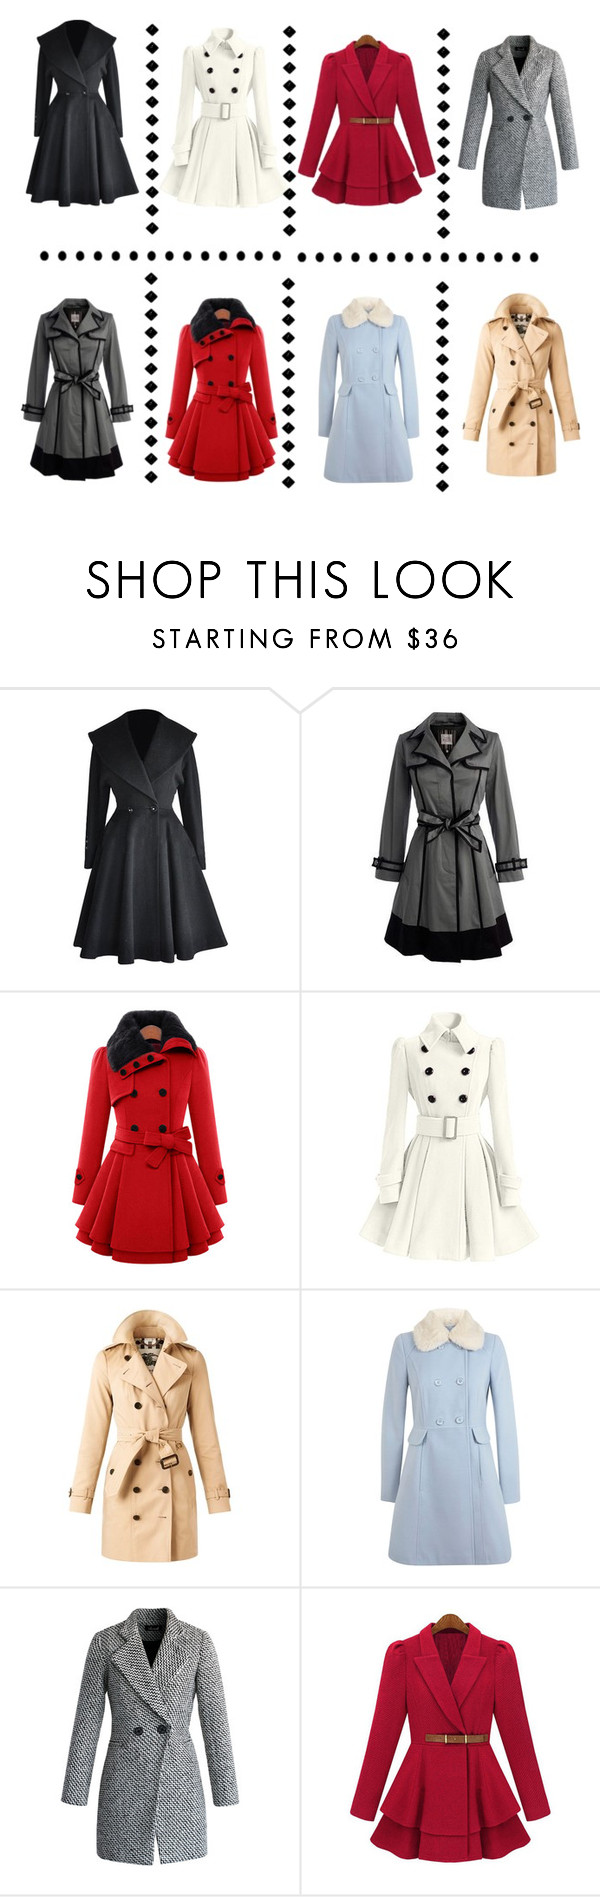 """Which Coat Are You?"" by chloes-creations ❤ liked on Polyvore featuring Burberry, Miss Selfridge, Chicwish, women's clothing, women's fashion, women, female, woman, misses and juniors"